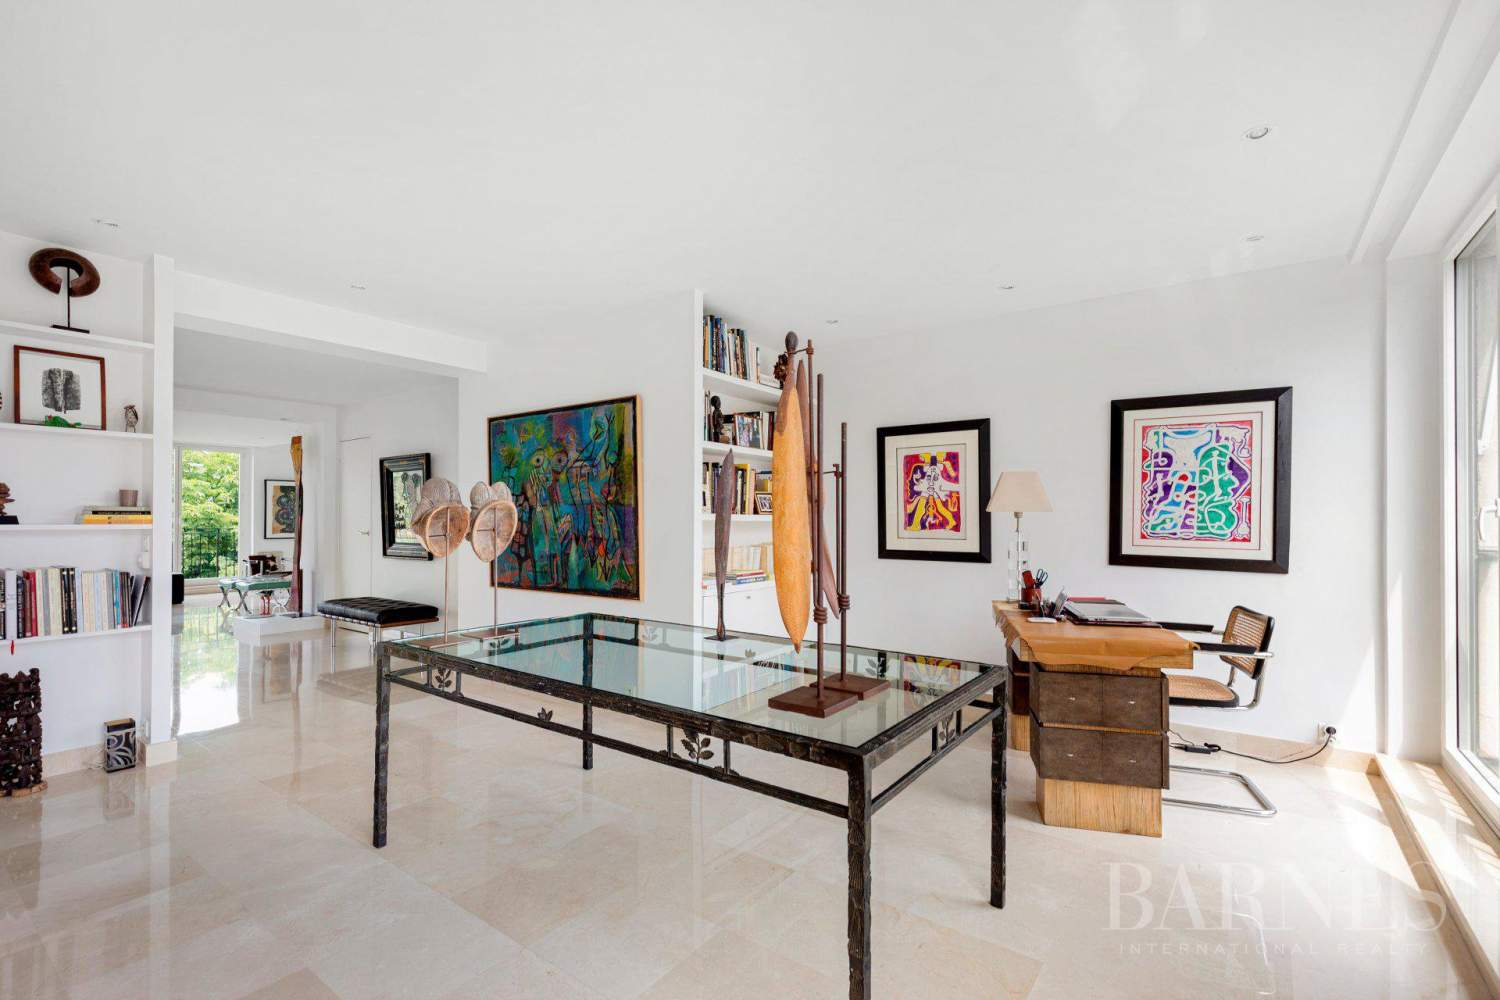 EXCLUSIVE - NEUILLY SAINT-JAMES - APARTMENT WITH RECEPTION ROOMS - UPPER FLOOR - PANORAMIC VIEWS picture 9